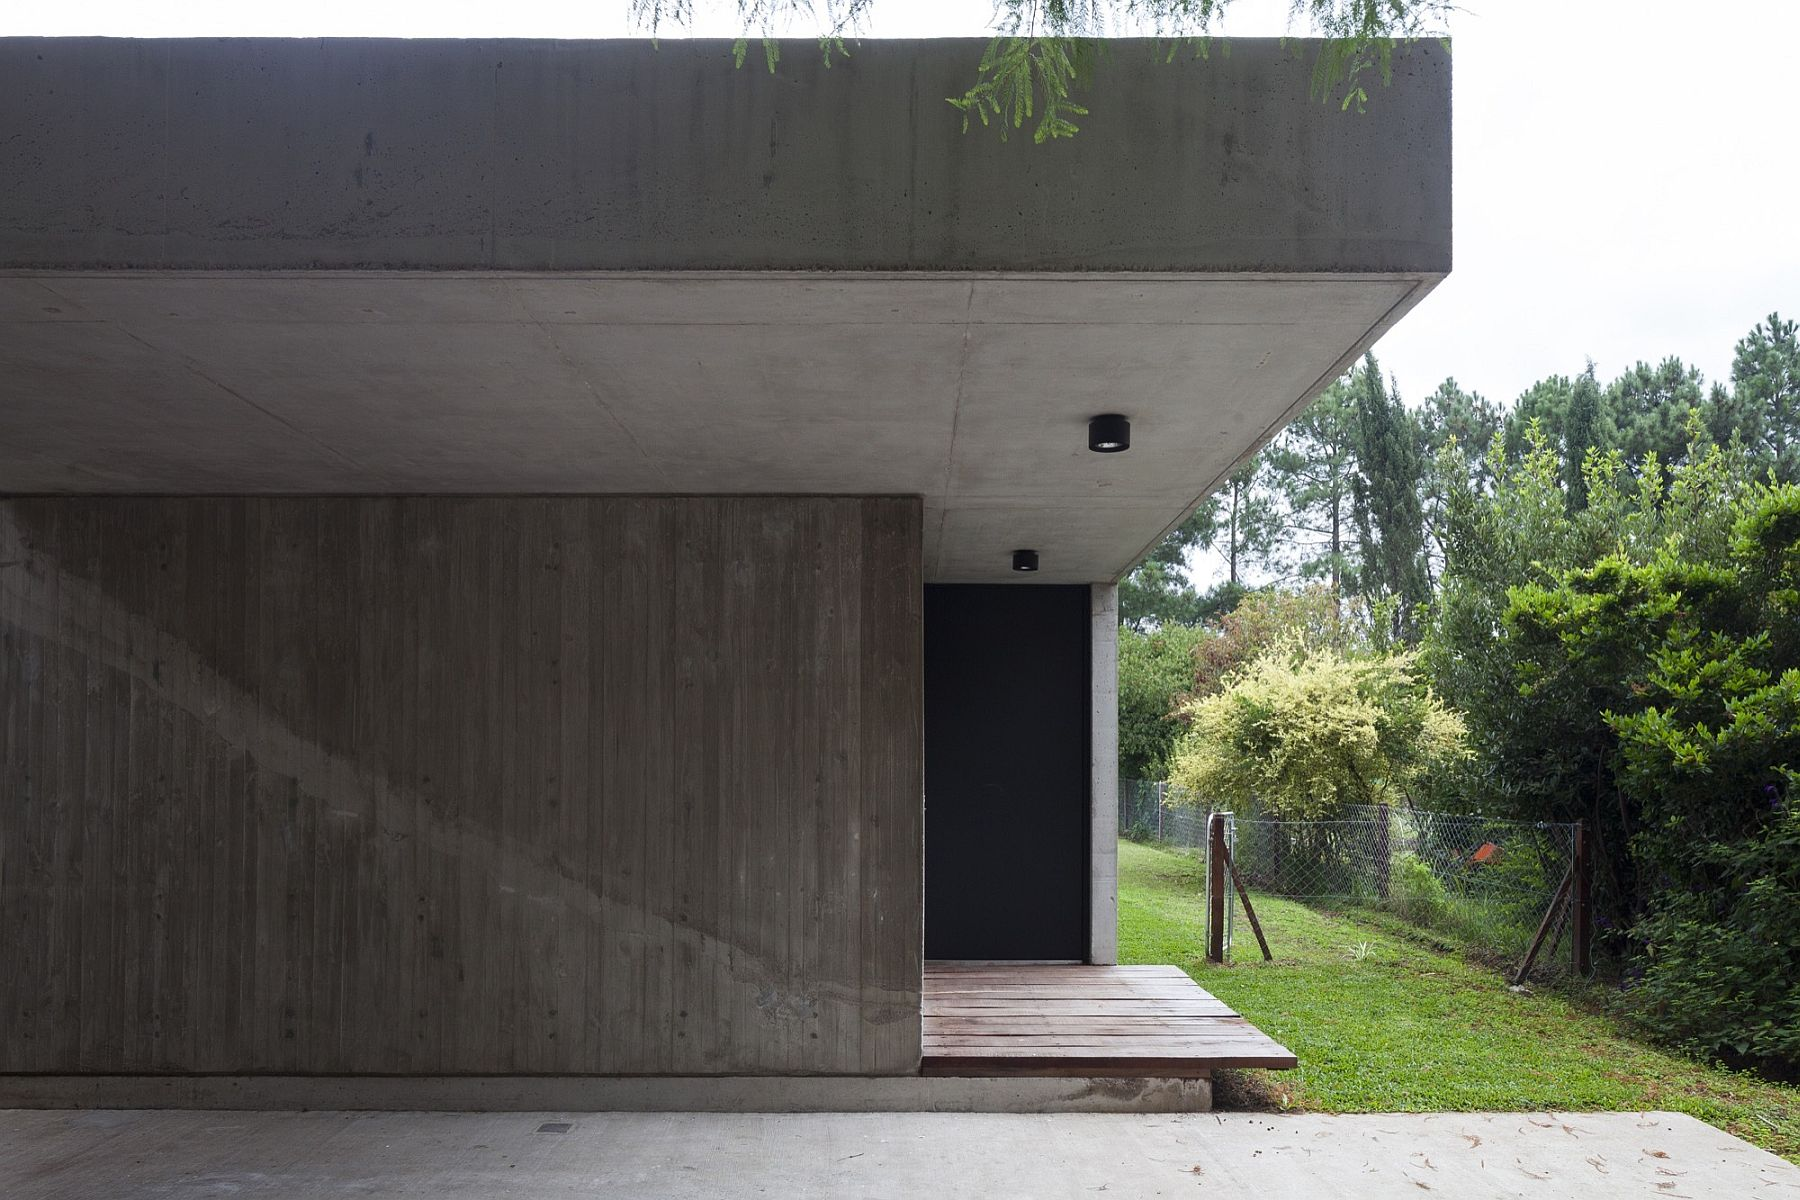 Concrete and steel shape the exetrior of the unique Buenos Aires home